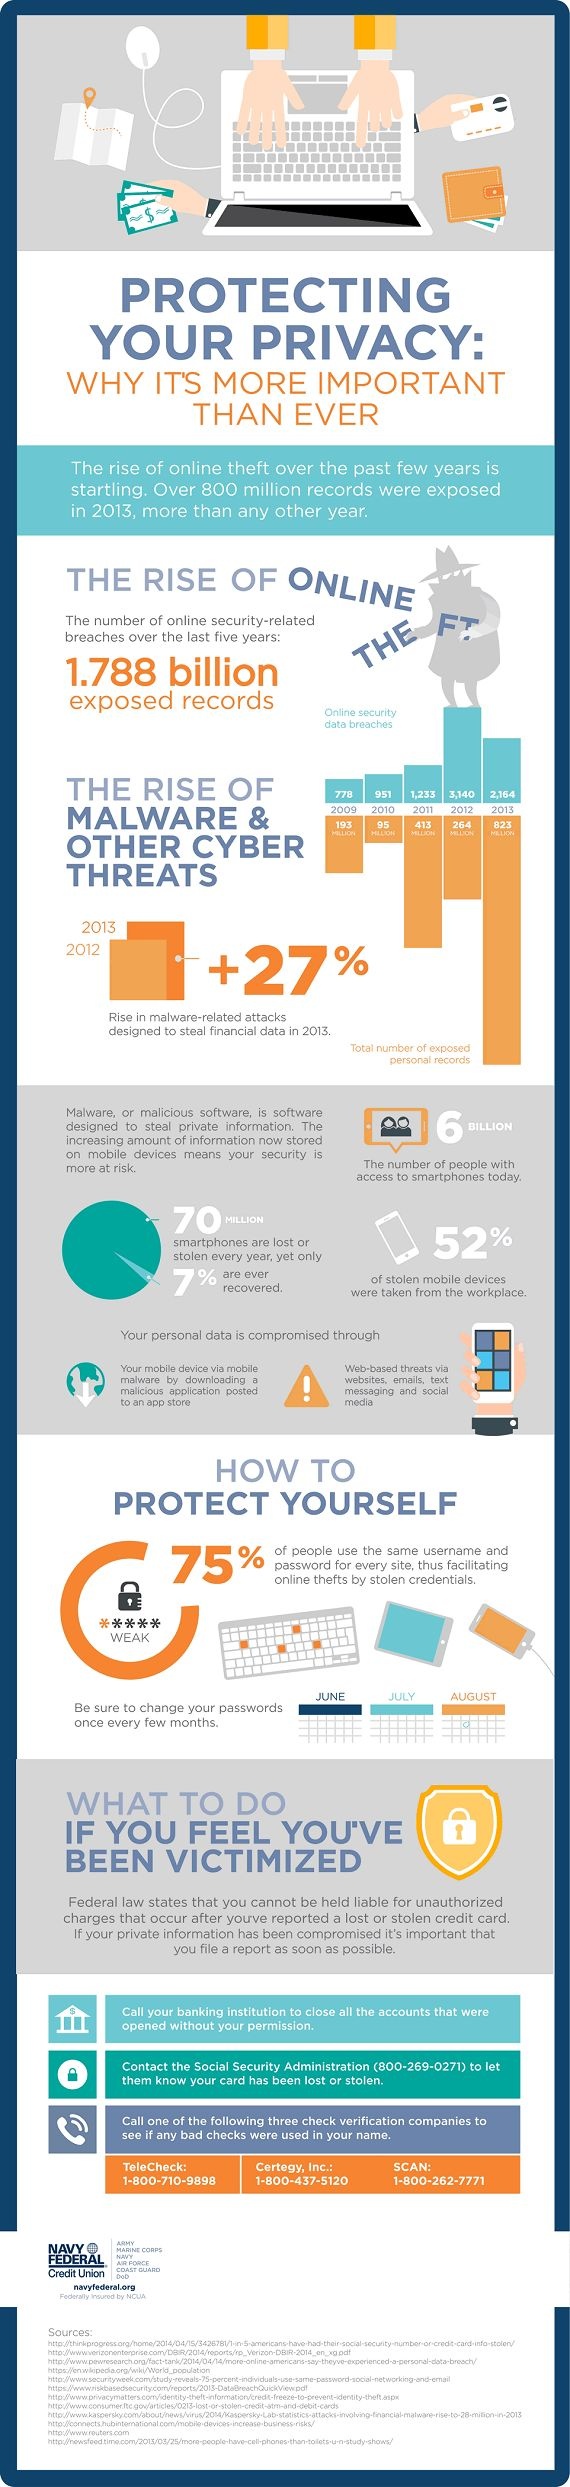 NFCU Identity Protection Infographic